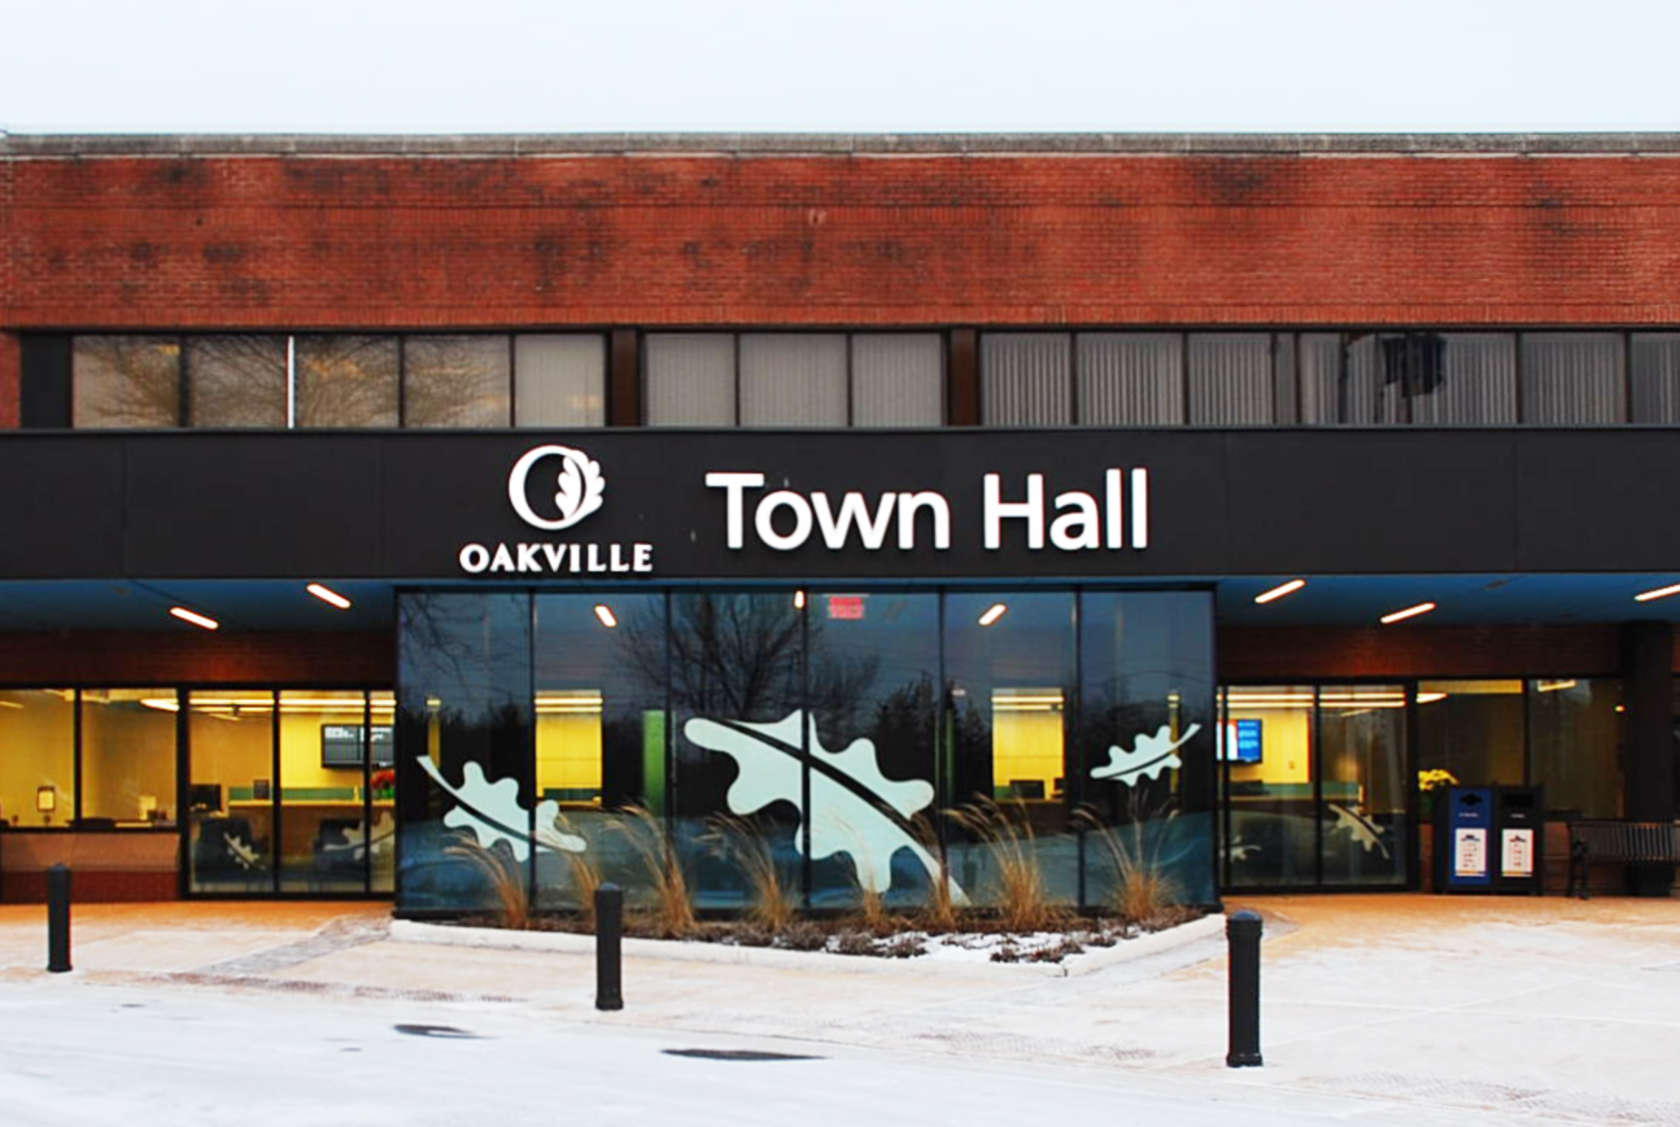 48 Town of Oakville jobs, including salaries, reviews, and other job information posted anonymously by Town of Oakville employees. Find Town of Oakville jobs on Glassdoor. Get hired. Love your job.